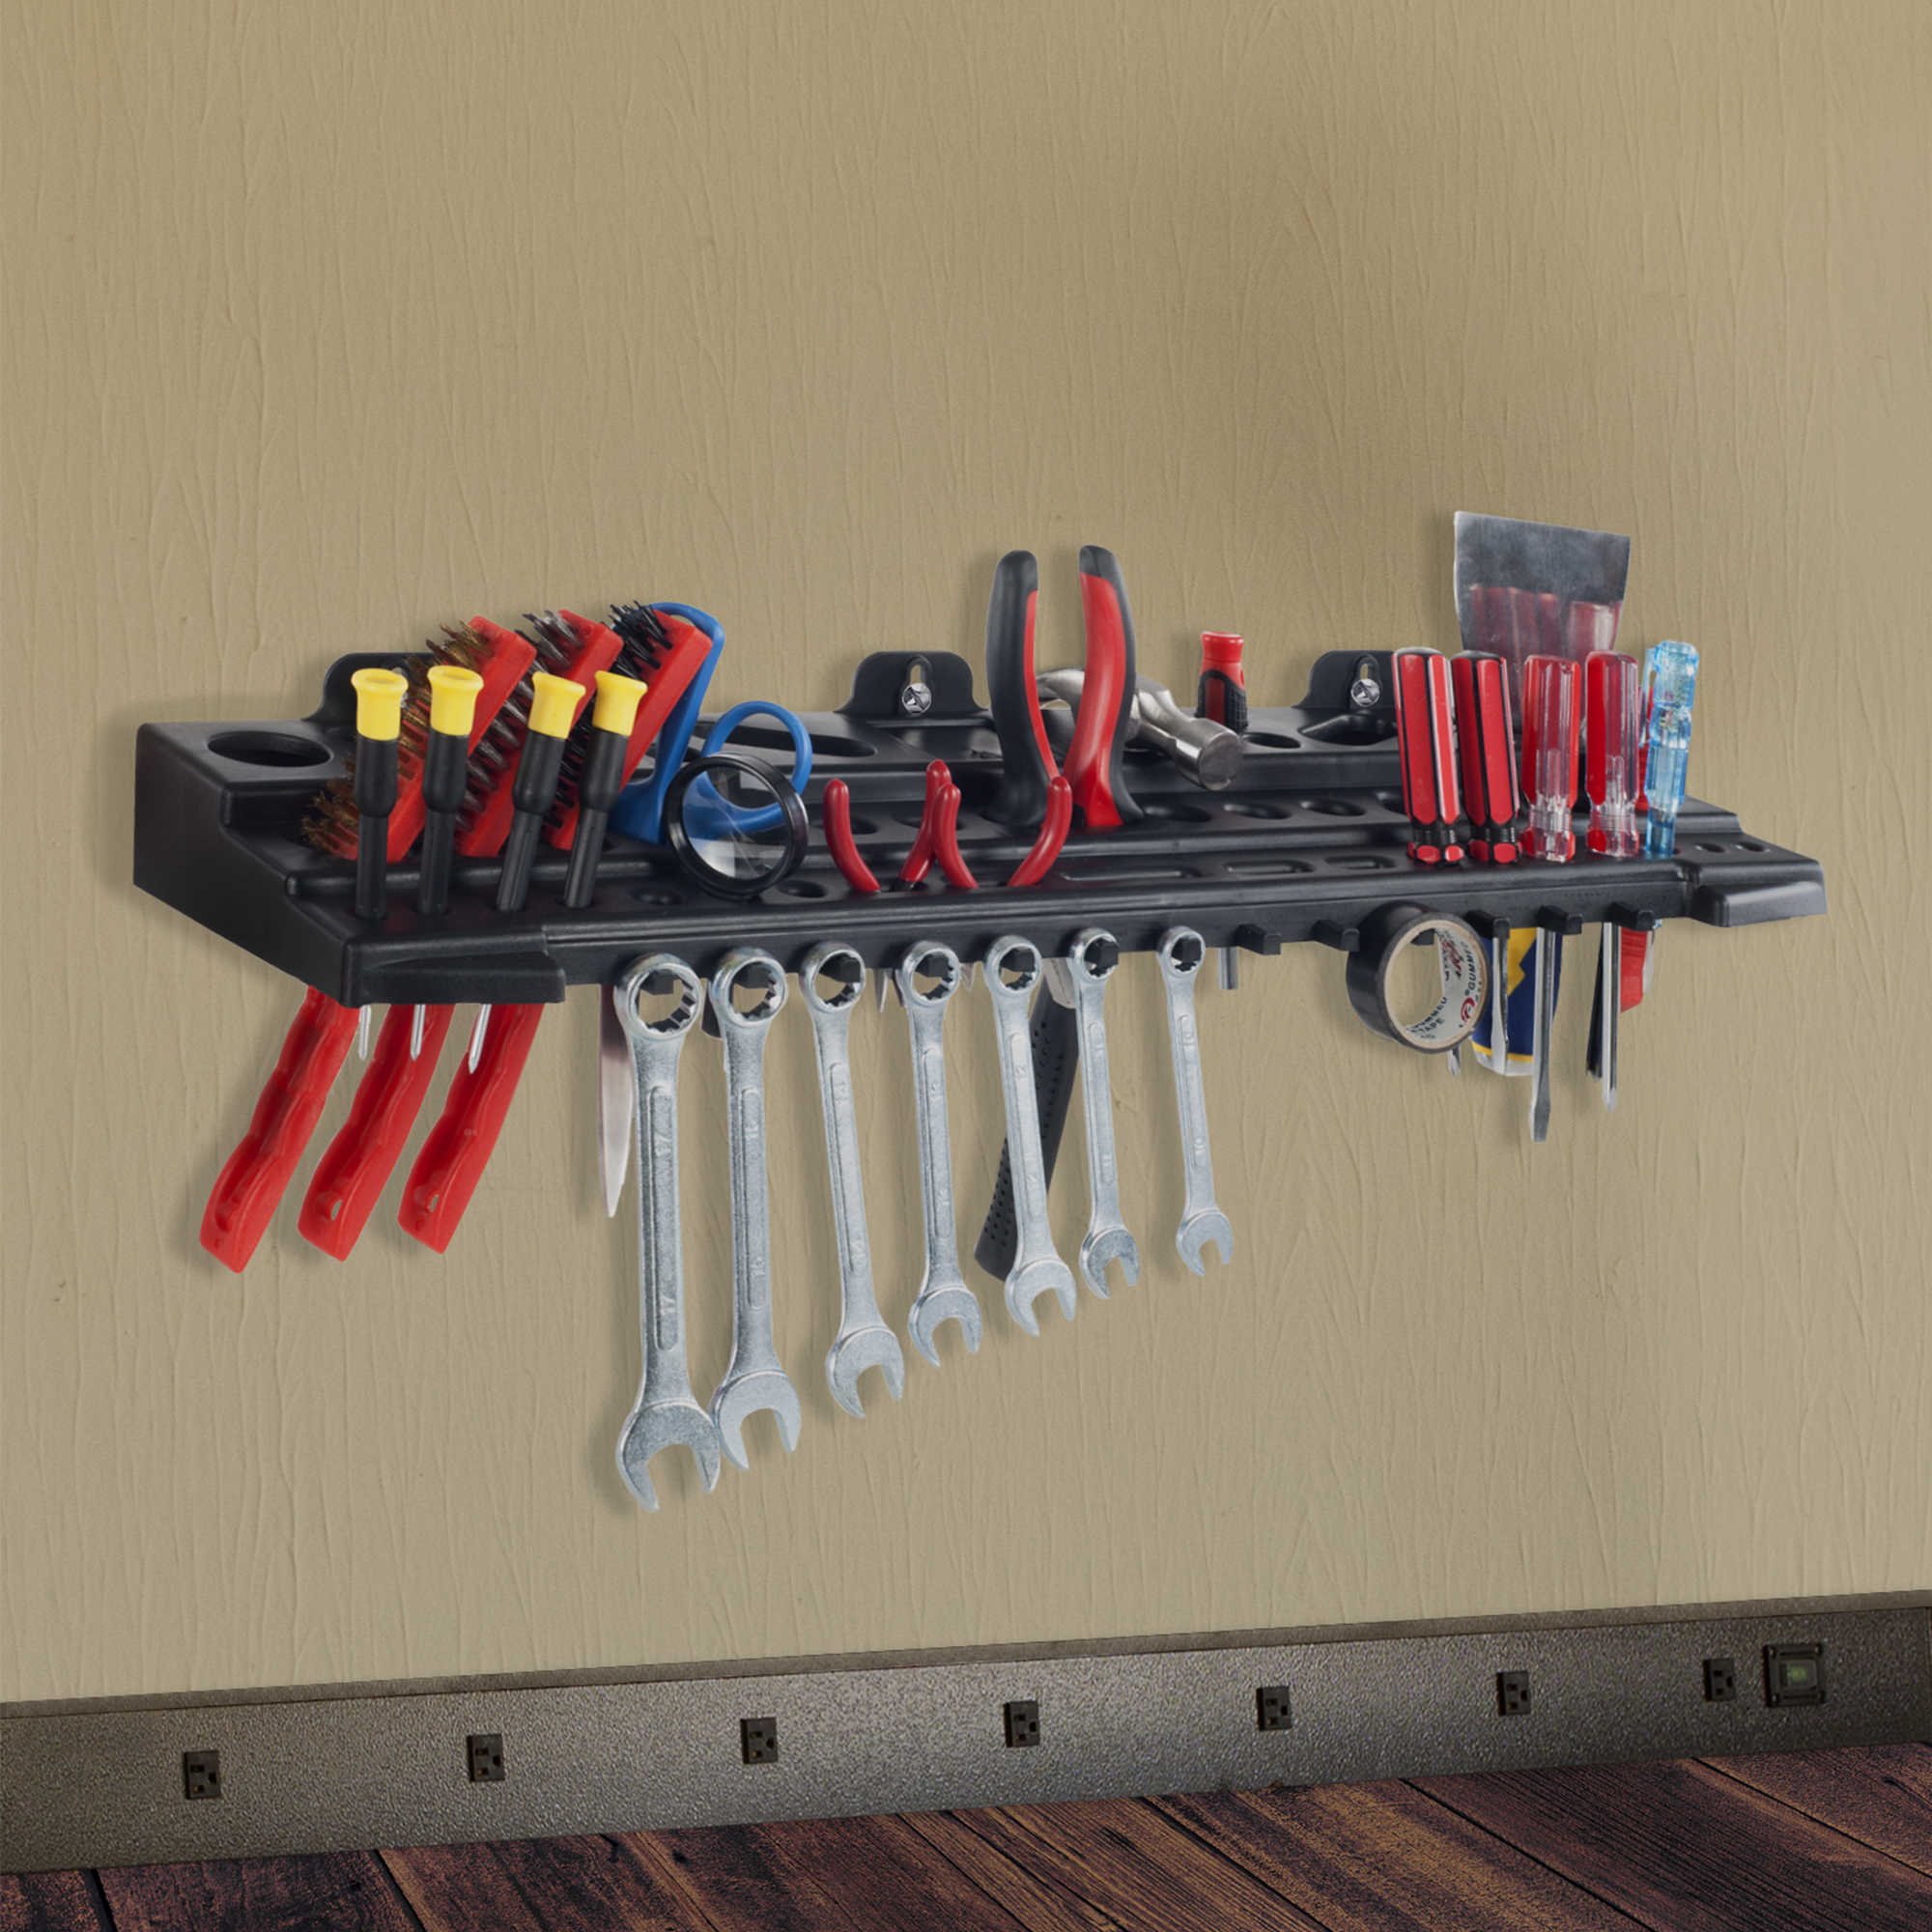 Multitool Organizer for Hand Tools, Automotive Tools, and Electric Tools, Wall Mounted Shelf by Stalwart